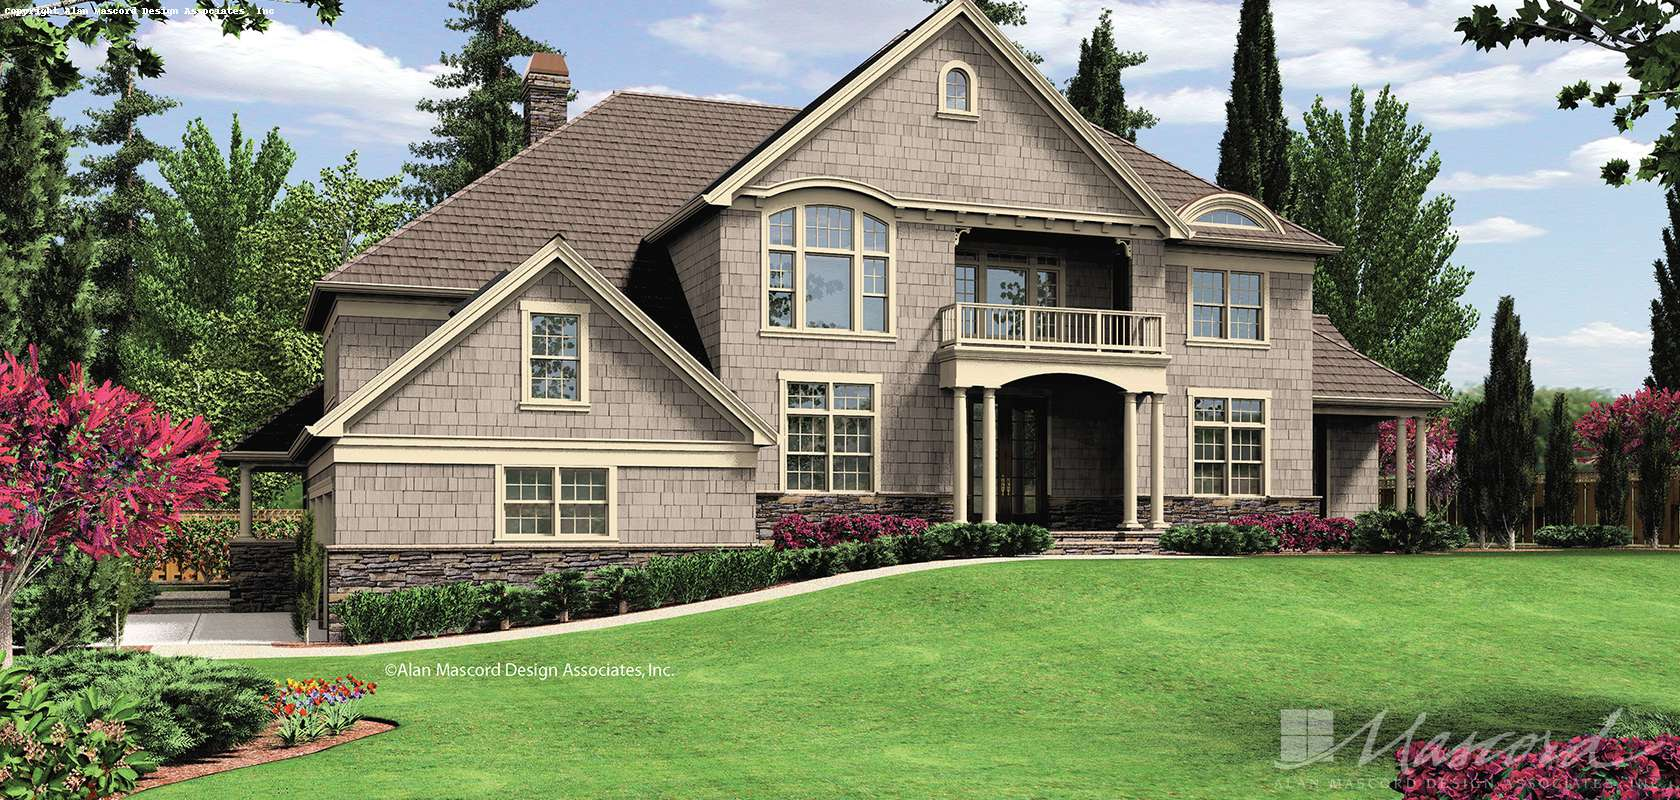 Mascord House Plan B2441: The Anniston